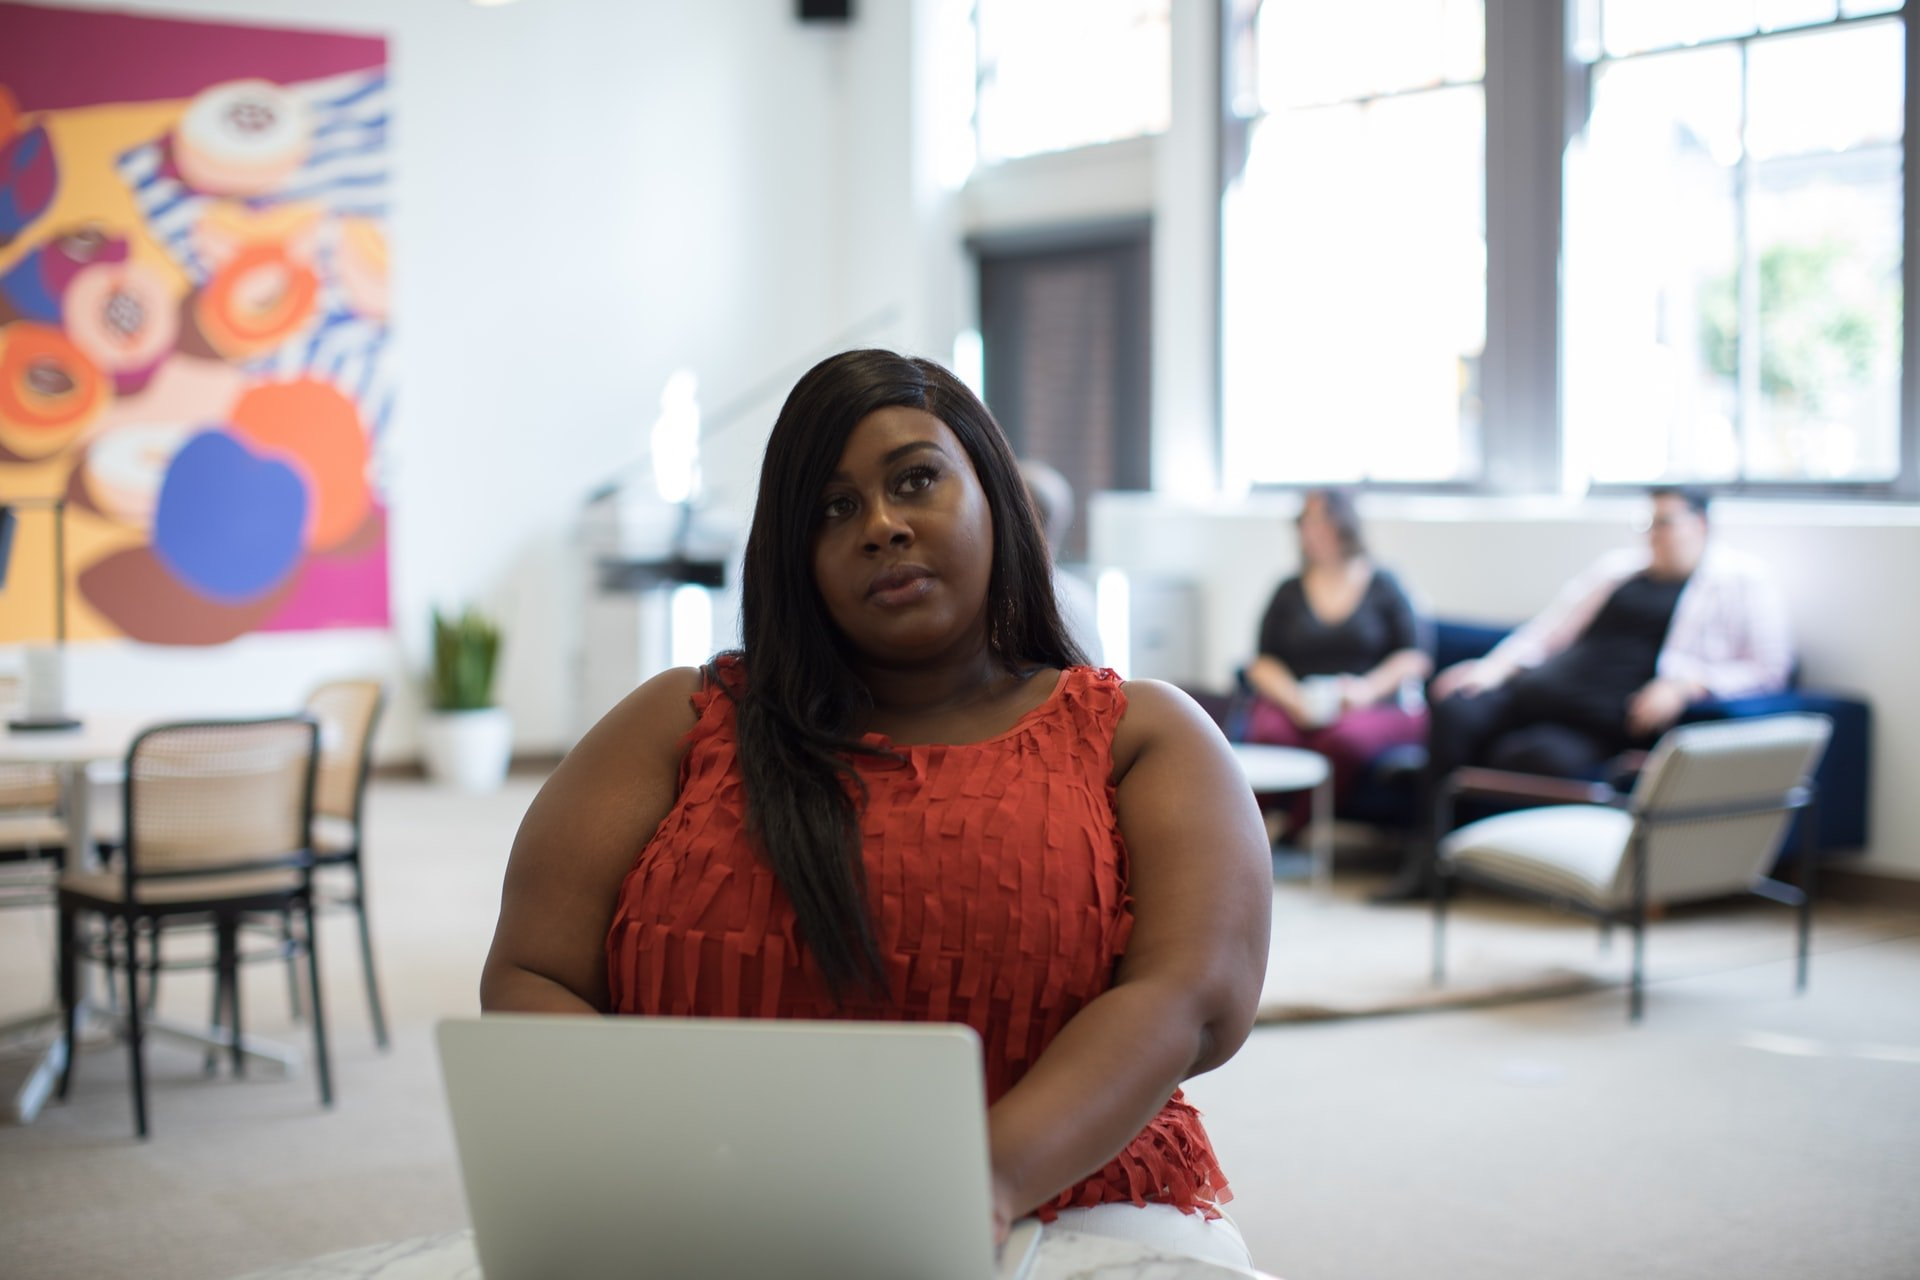 10 Ways Freelance Writers can Fight Imposter Syndrome Featured image: young black woman sitting in front of a laptop pondering something.